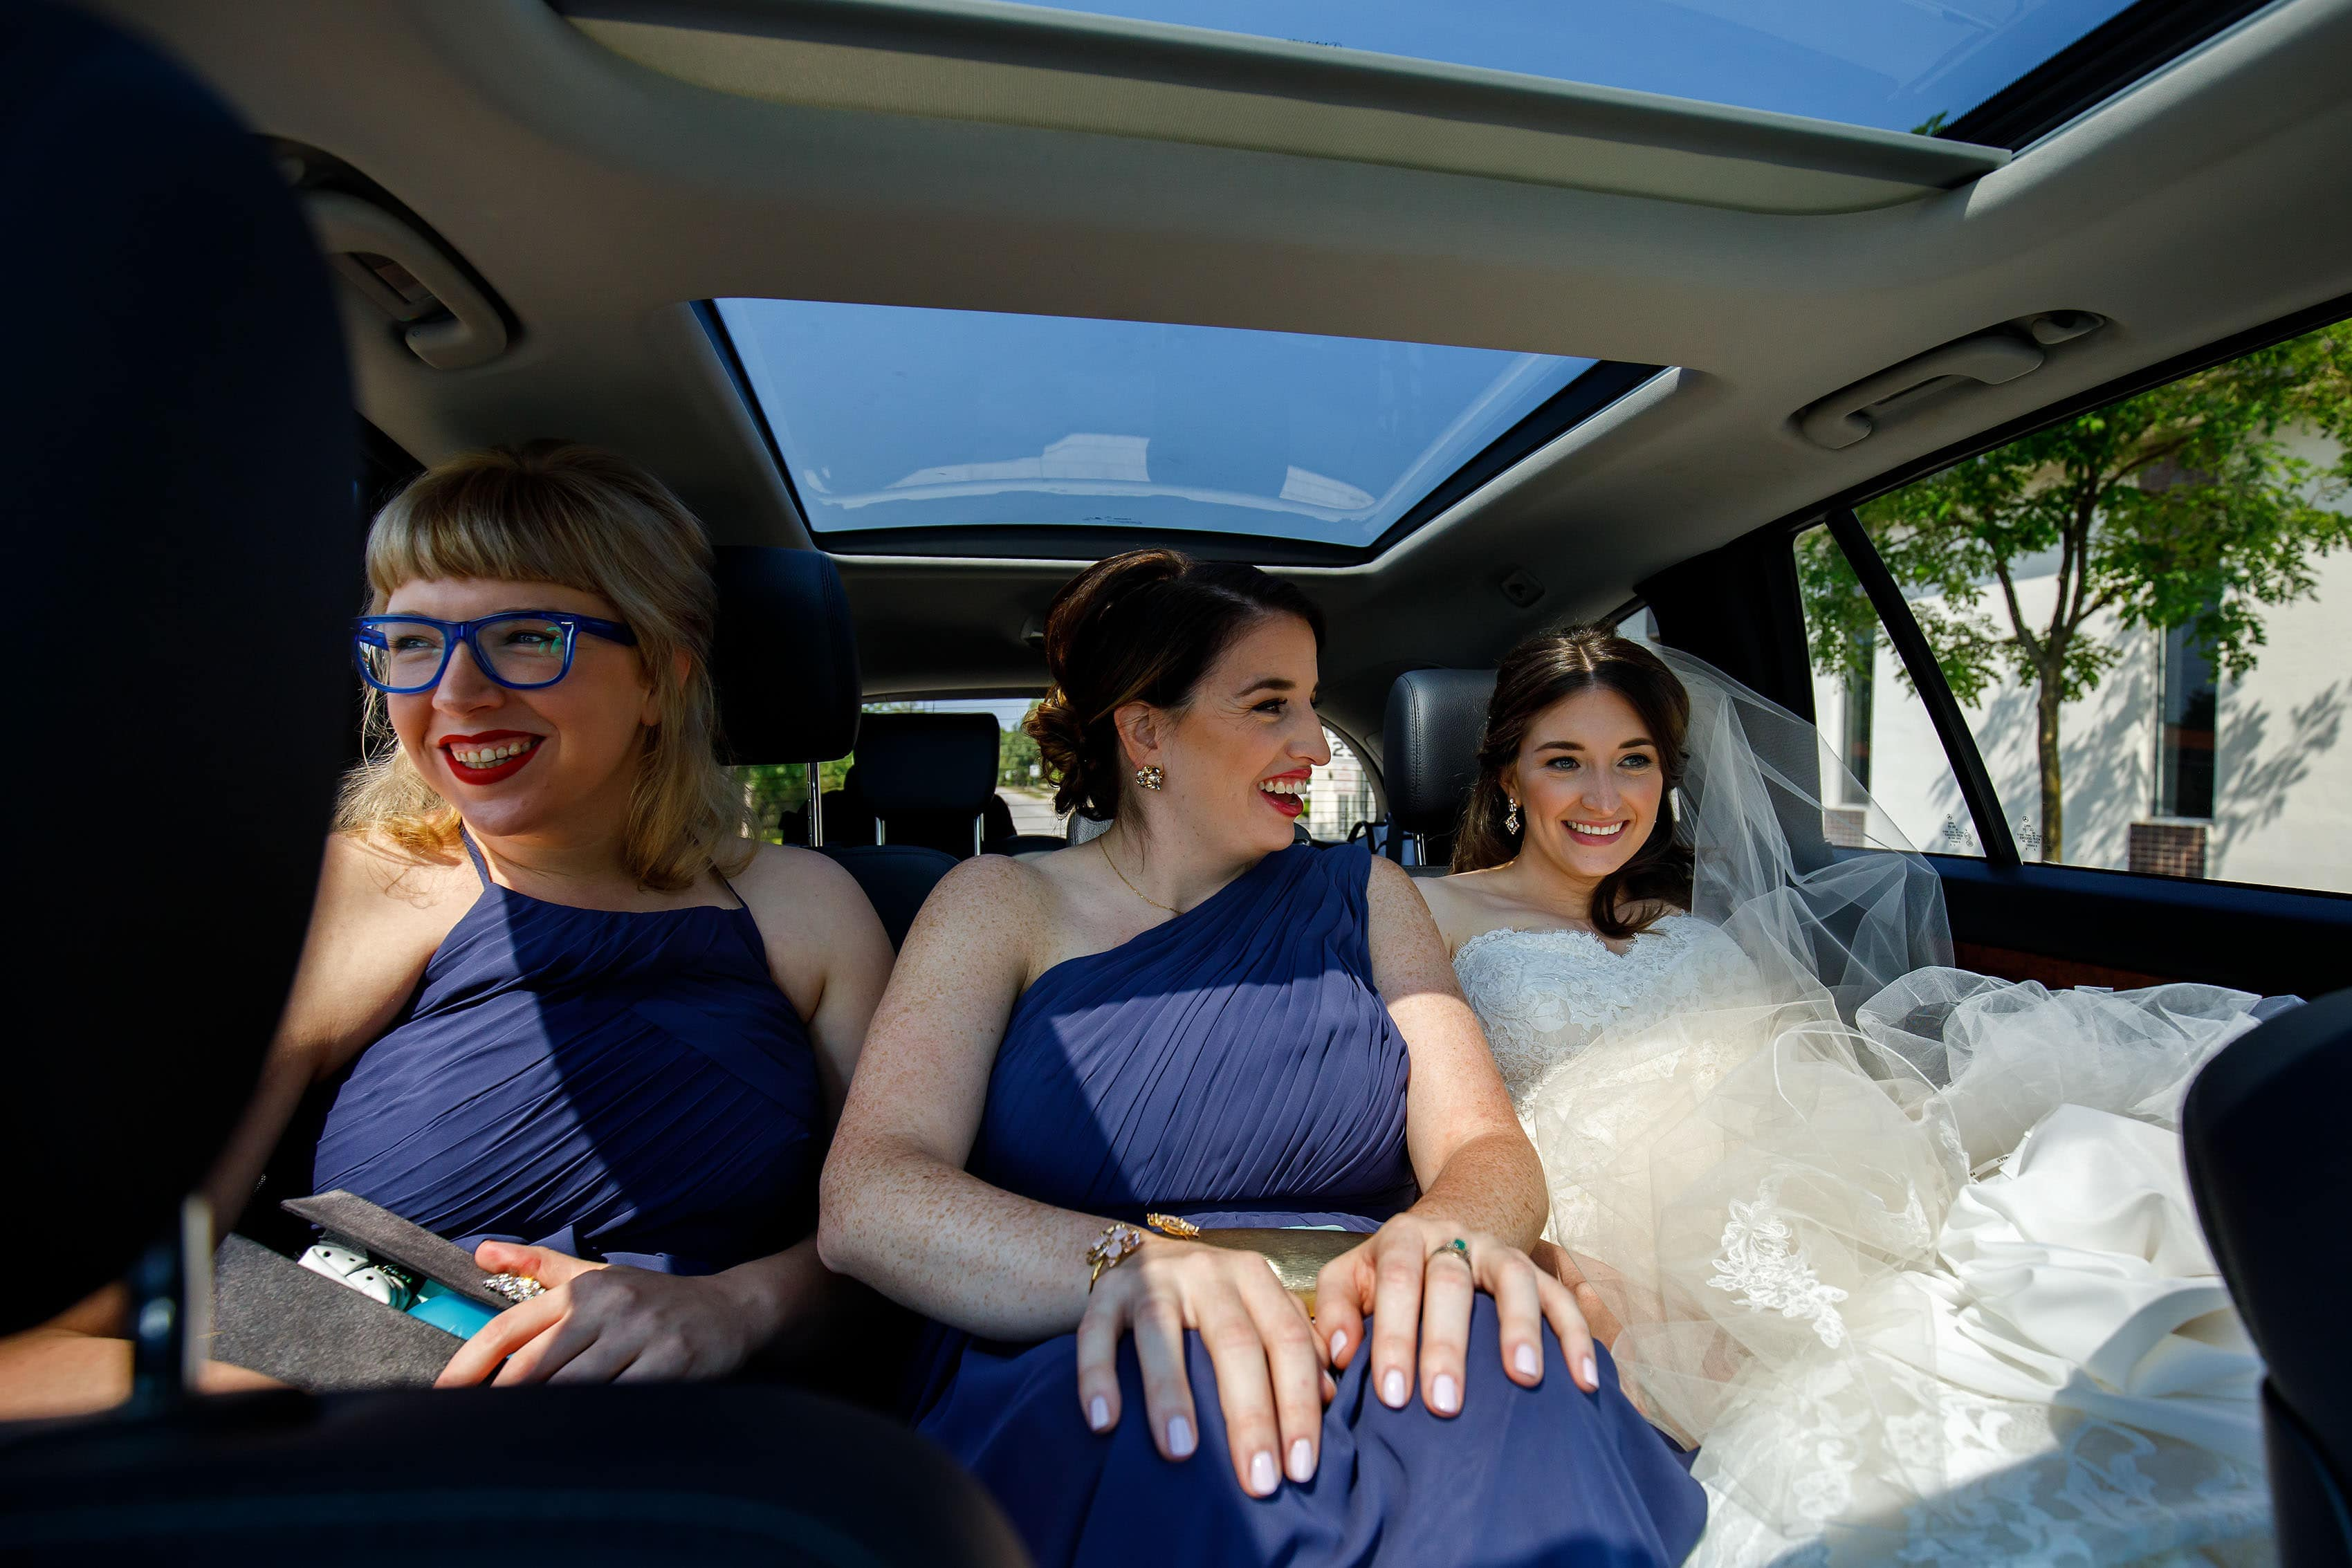 Katie rides to the wedding with her sisters